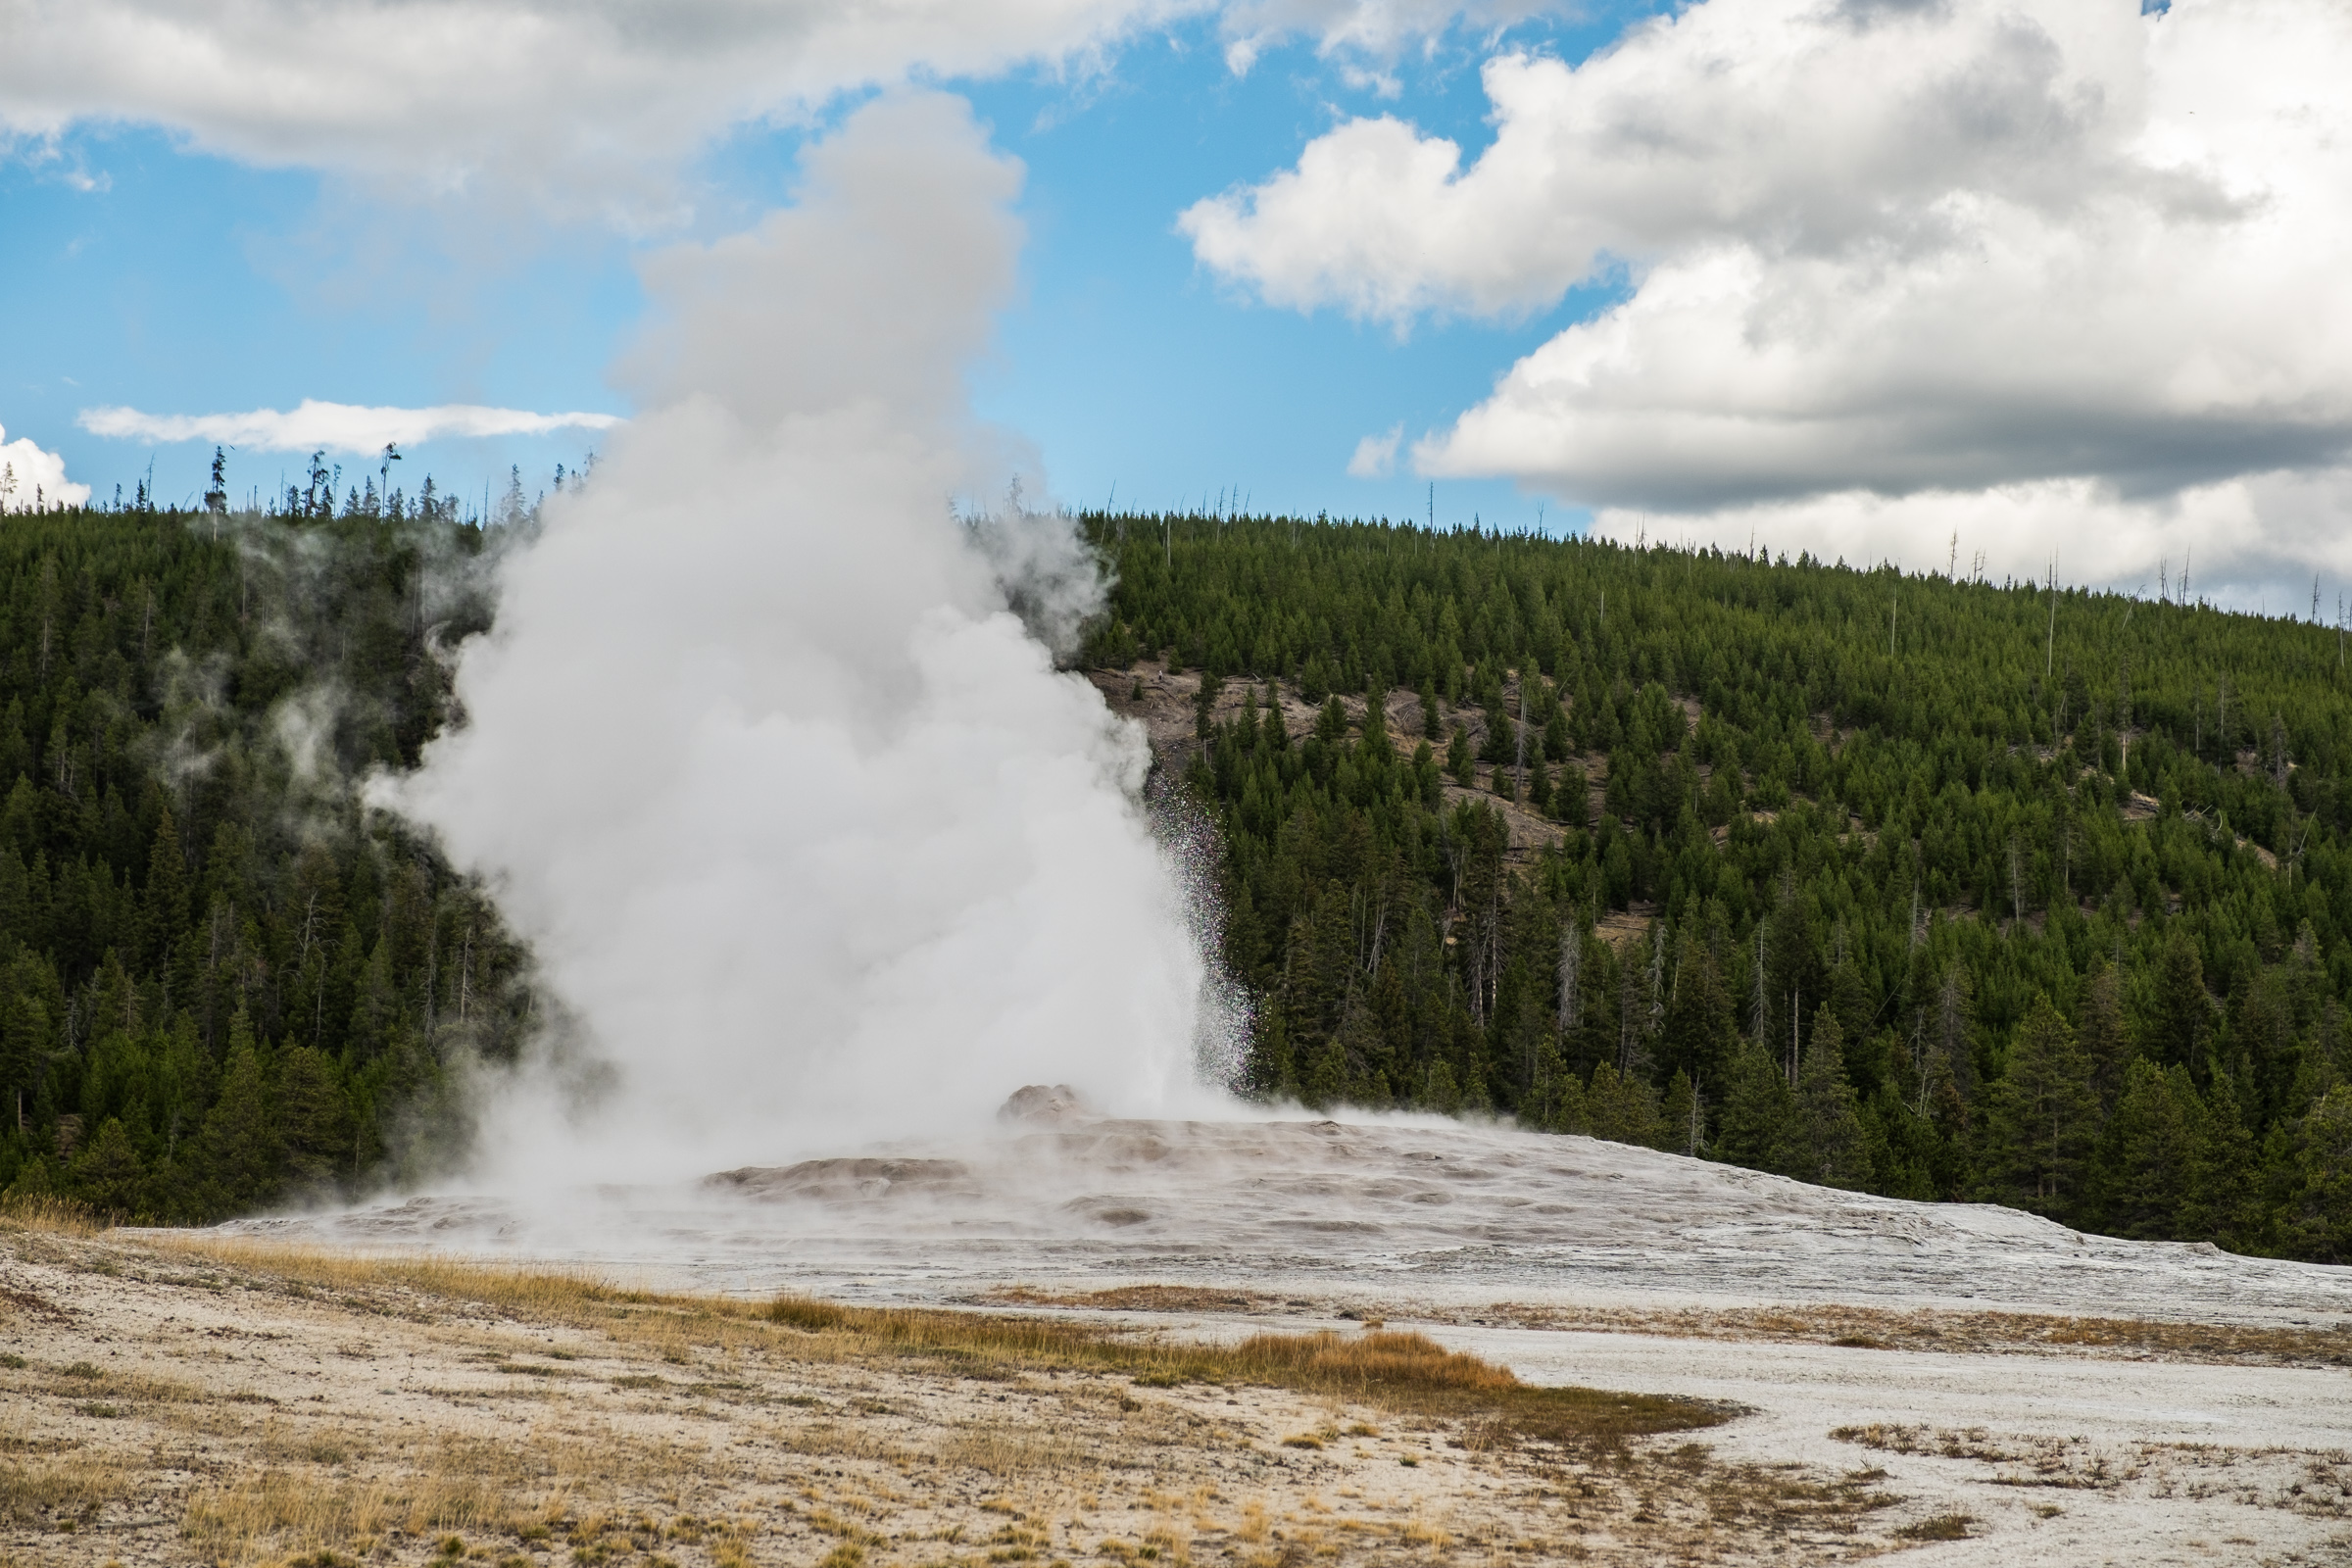 The famed Old Faithful geyser erupting right on time next to the Old Faithful Lodge.